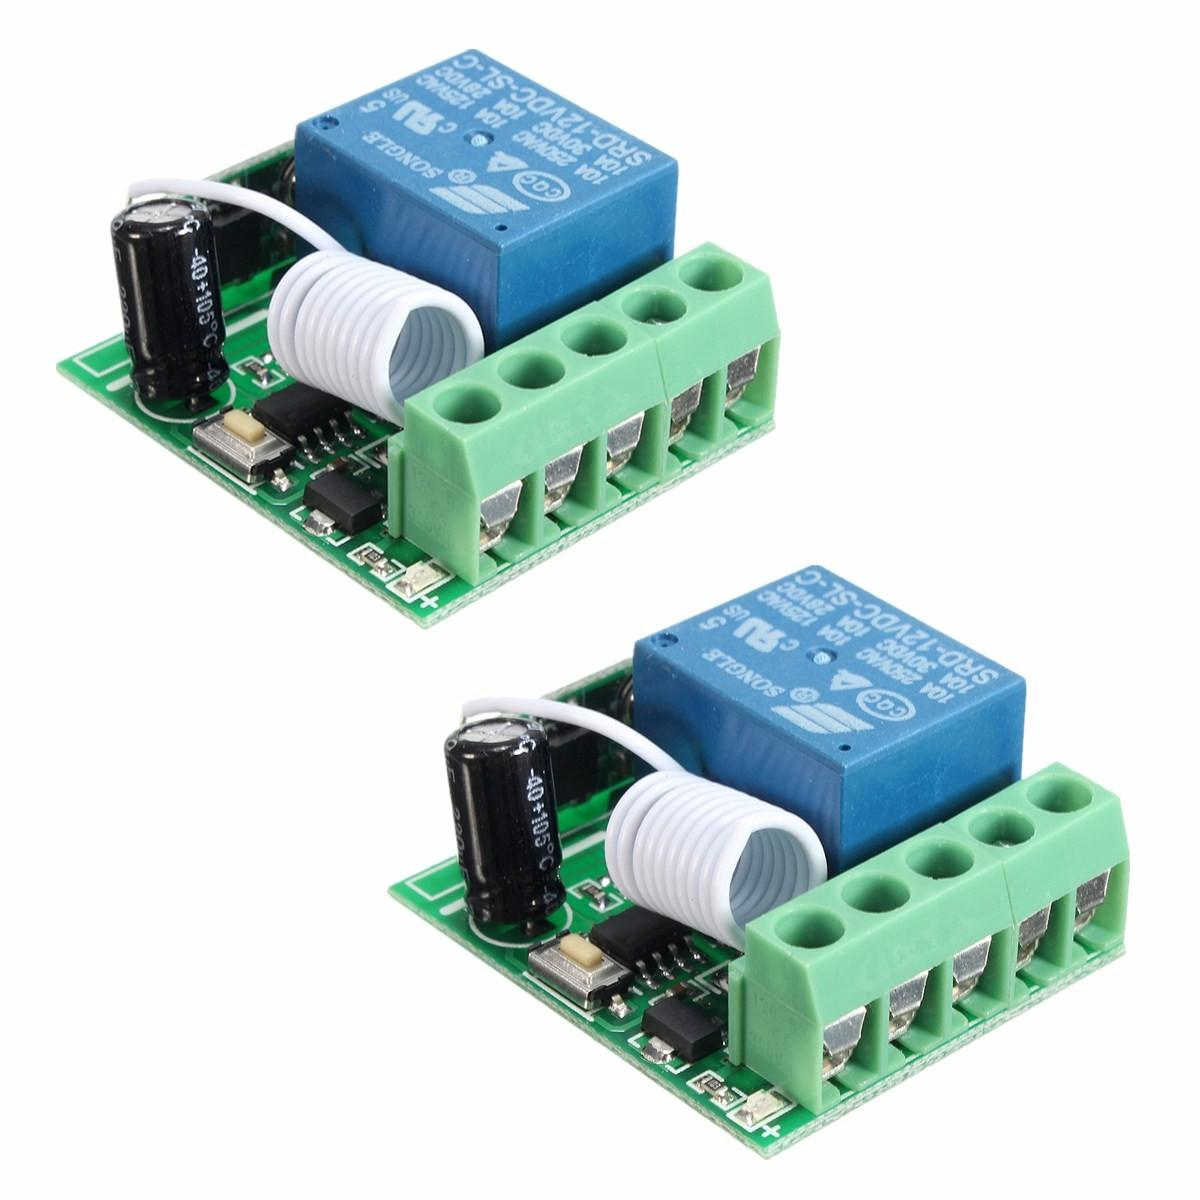 2pcs Dc12v 10a 1ch 433mhz Wireless Relay Rf Remote Control Switch Circuit Receiver